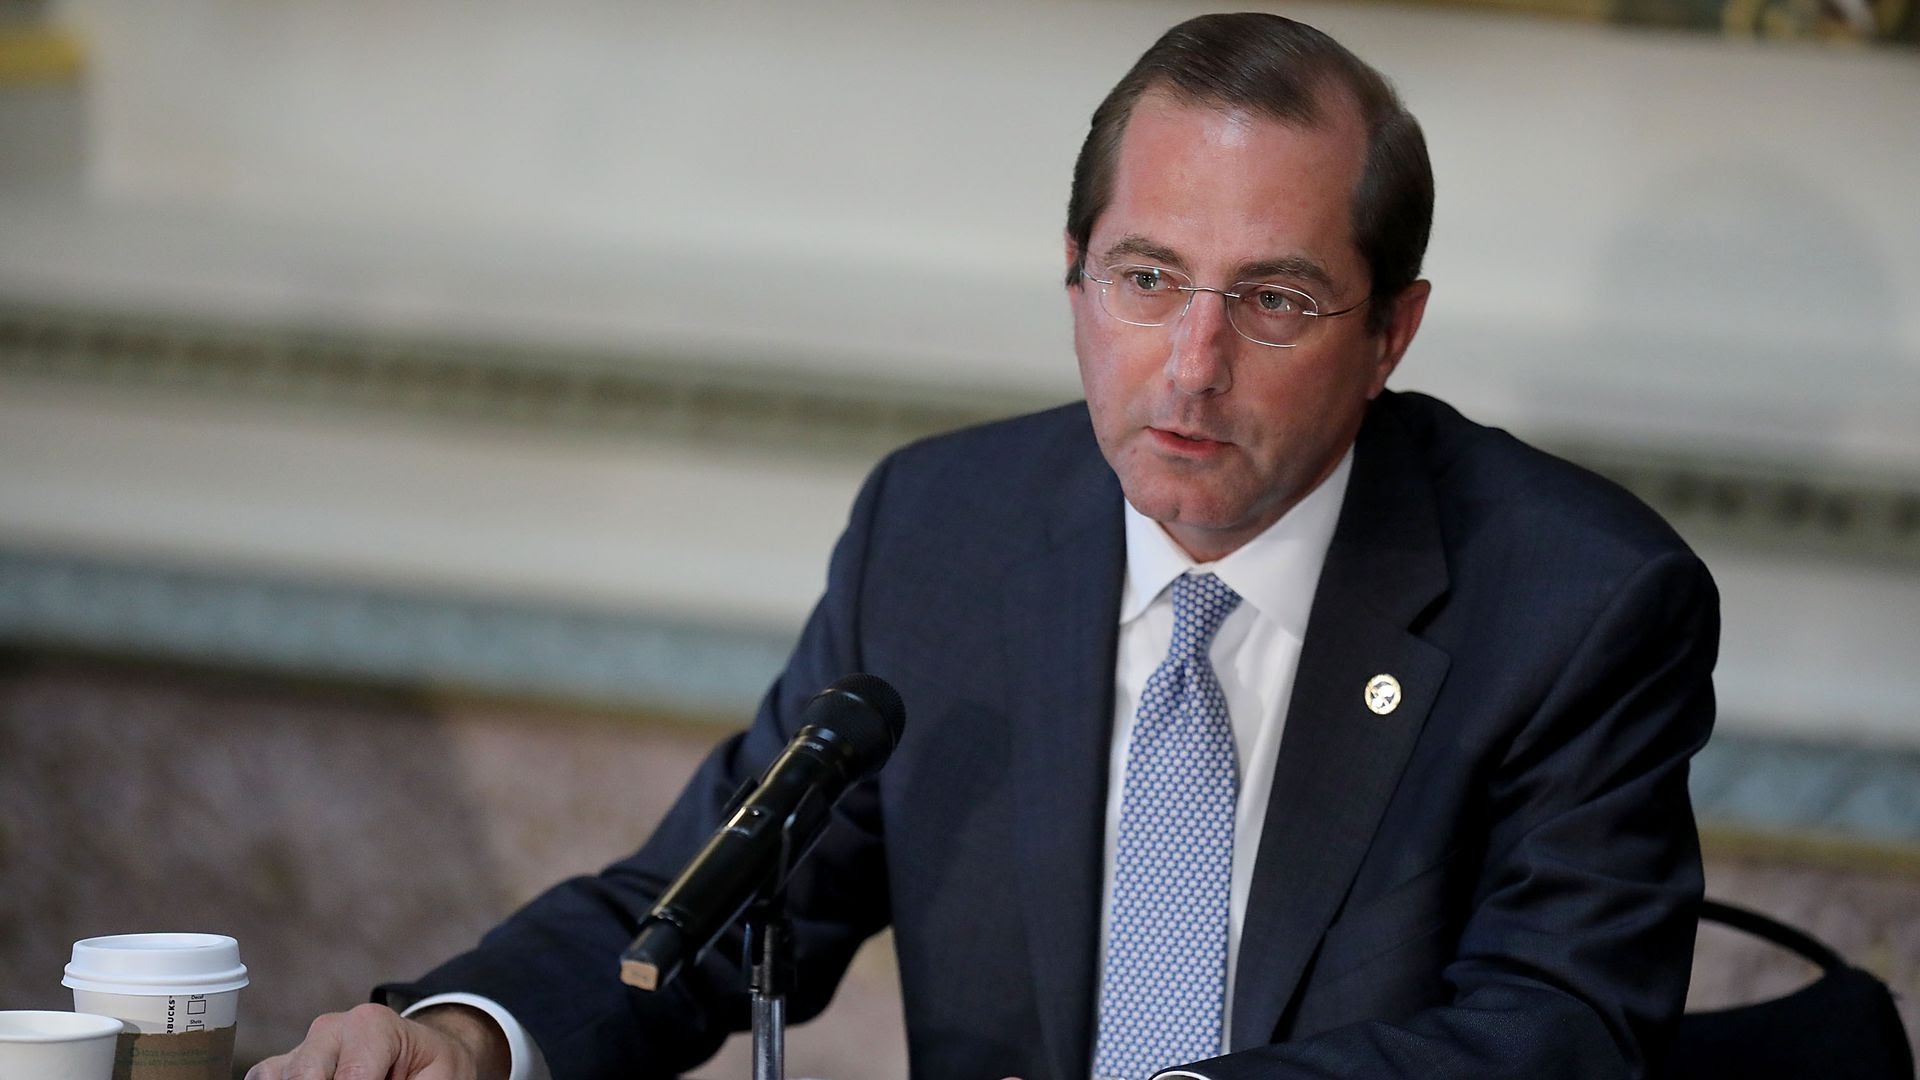 This is Health and Human Service Secretary Alex Azar, talking into a microphone